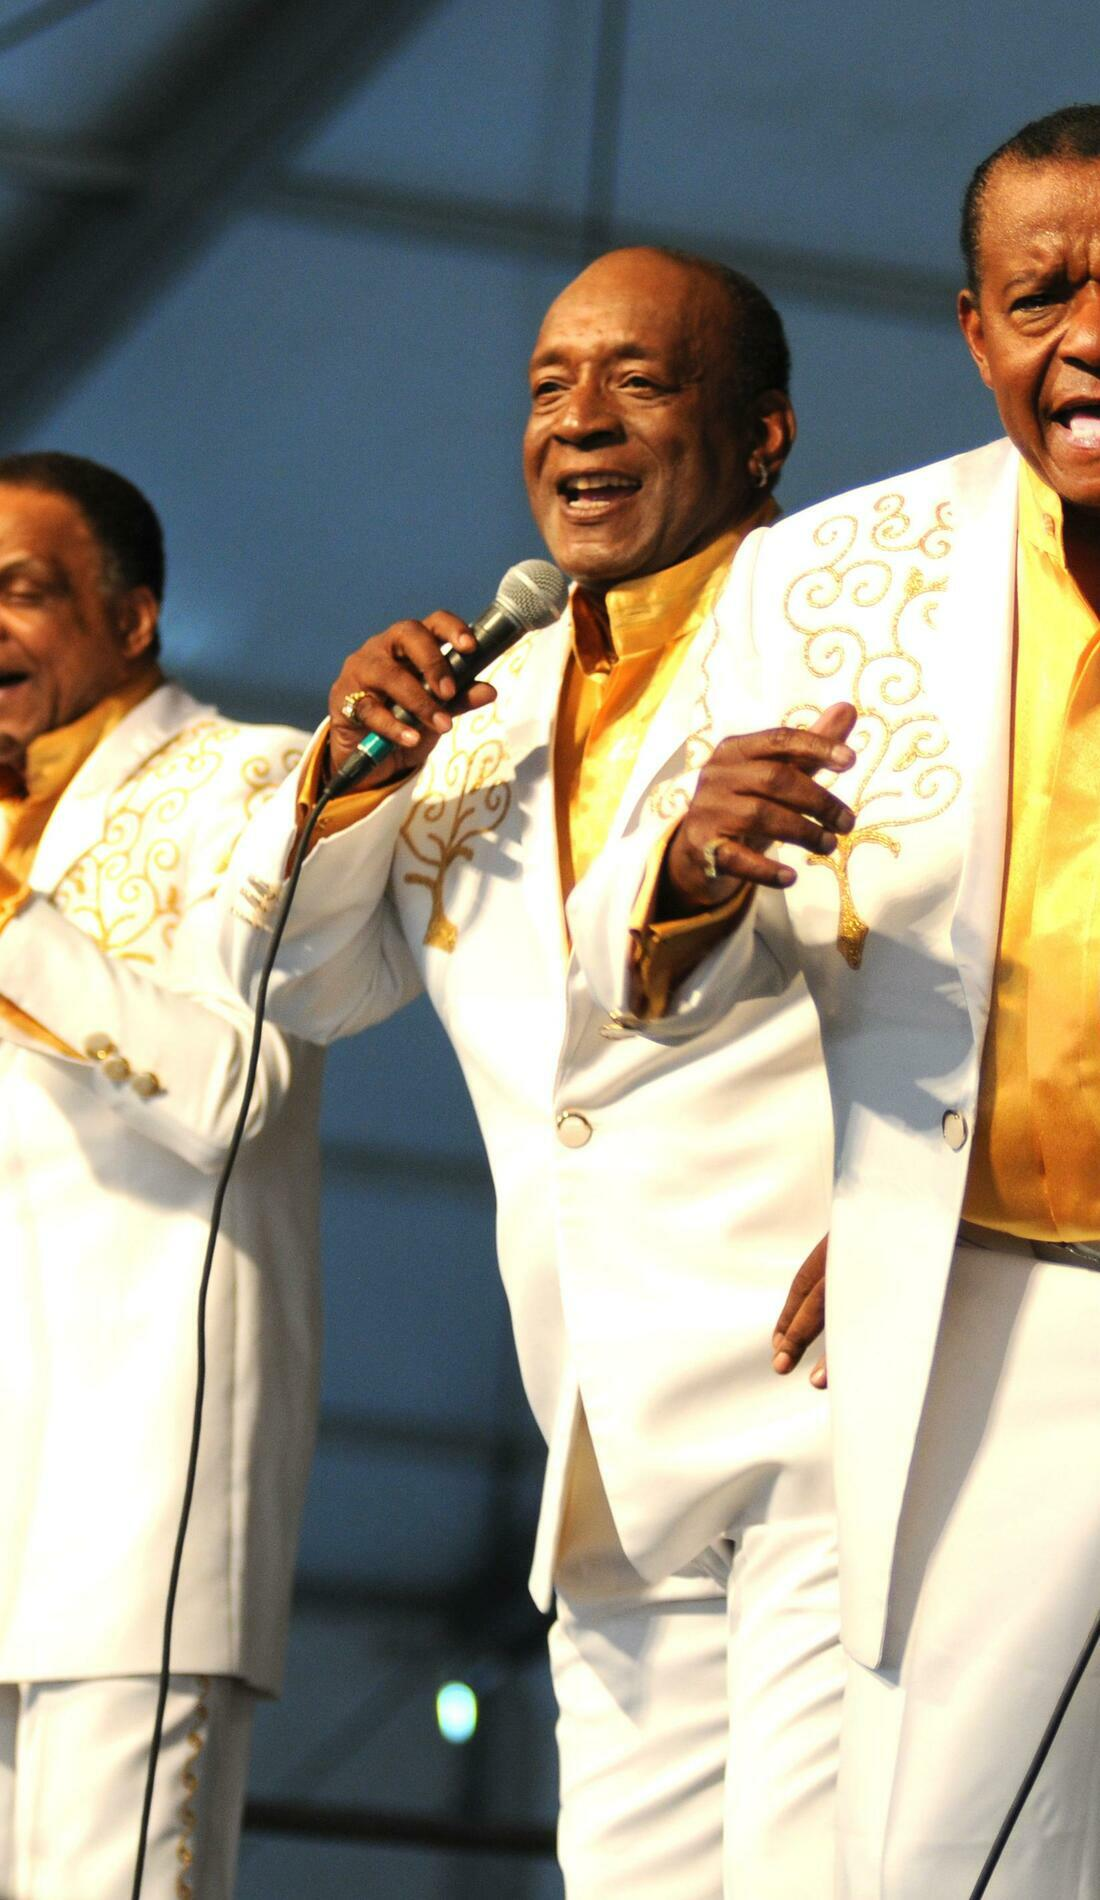 A Little Anthony & the Imperials live event